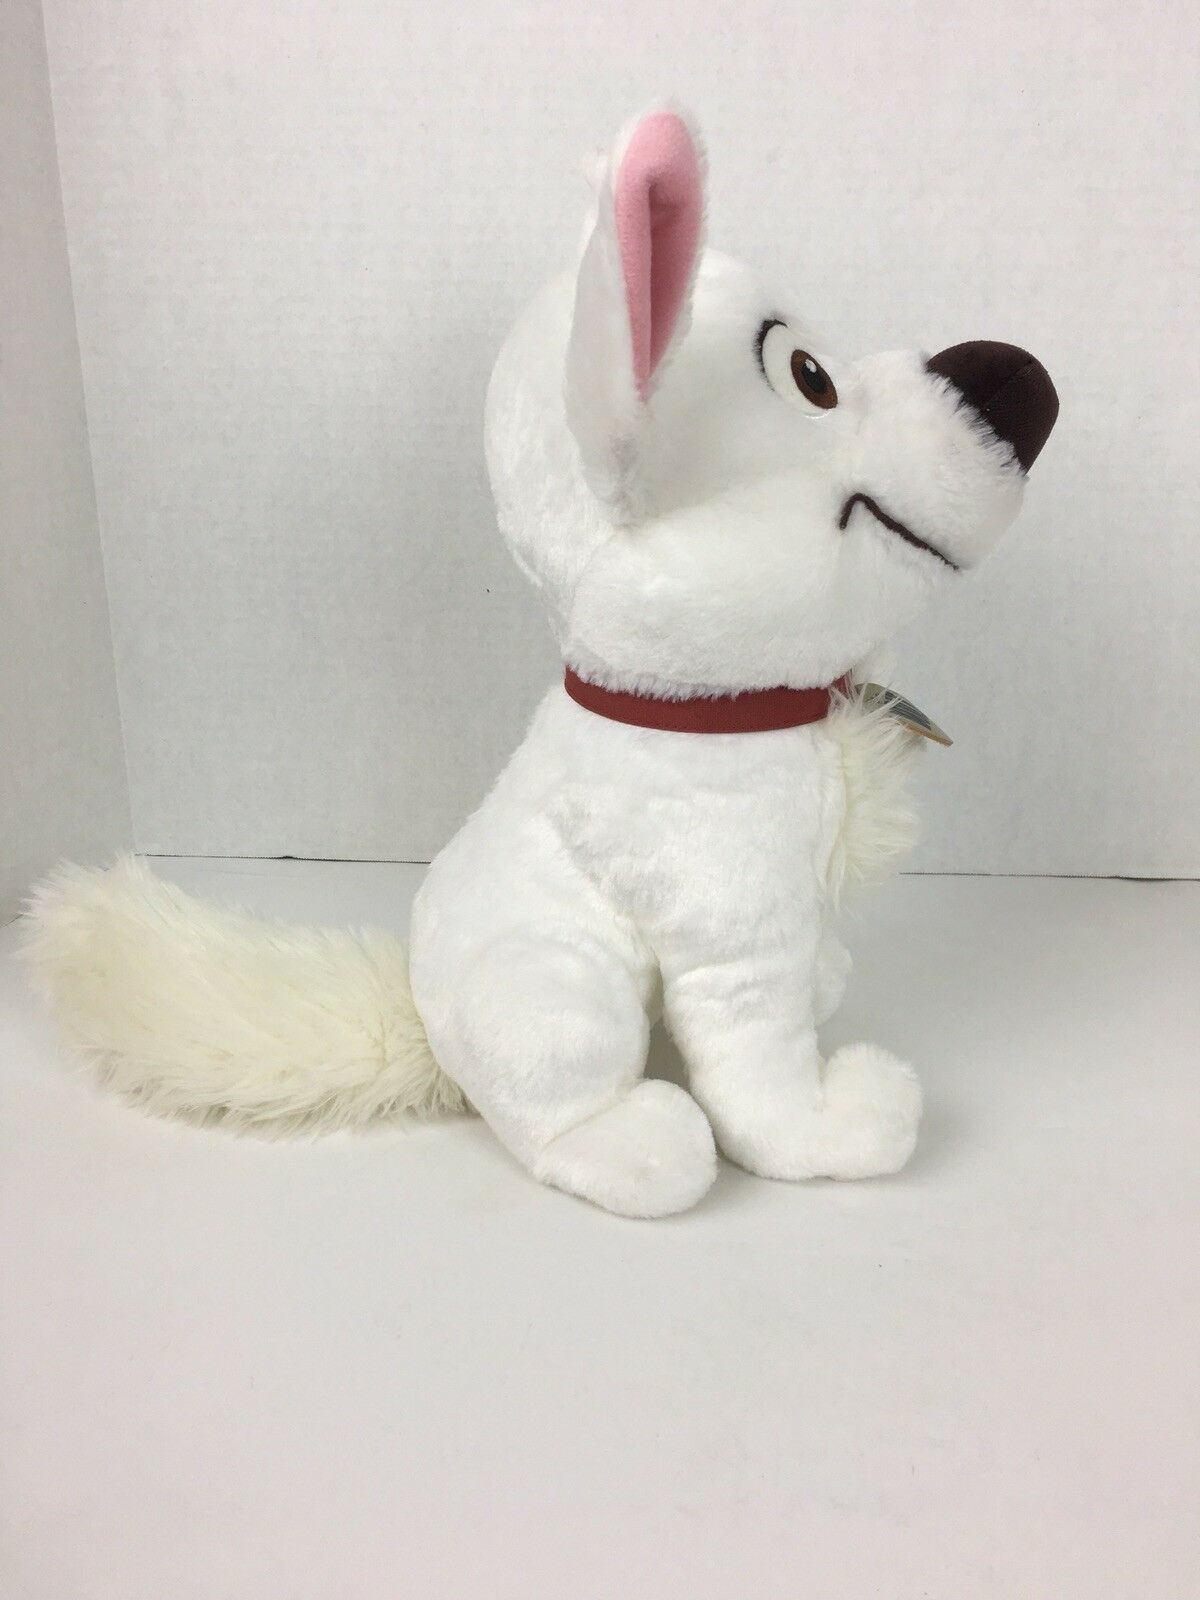 Disney Bolt Plush Authentic Disney Store Original 12 Inch